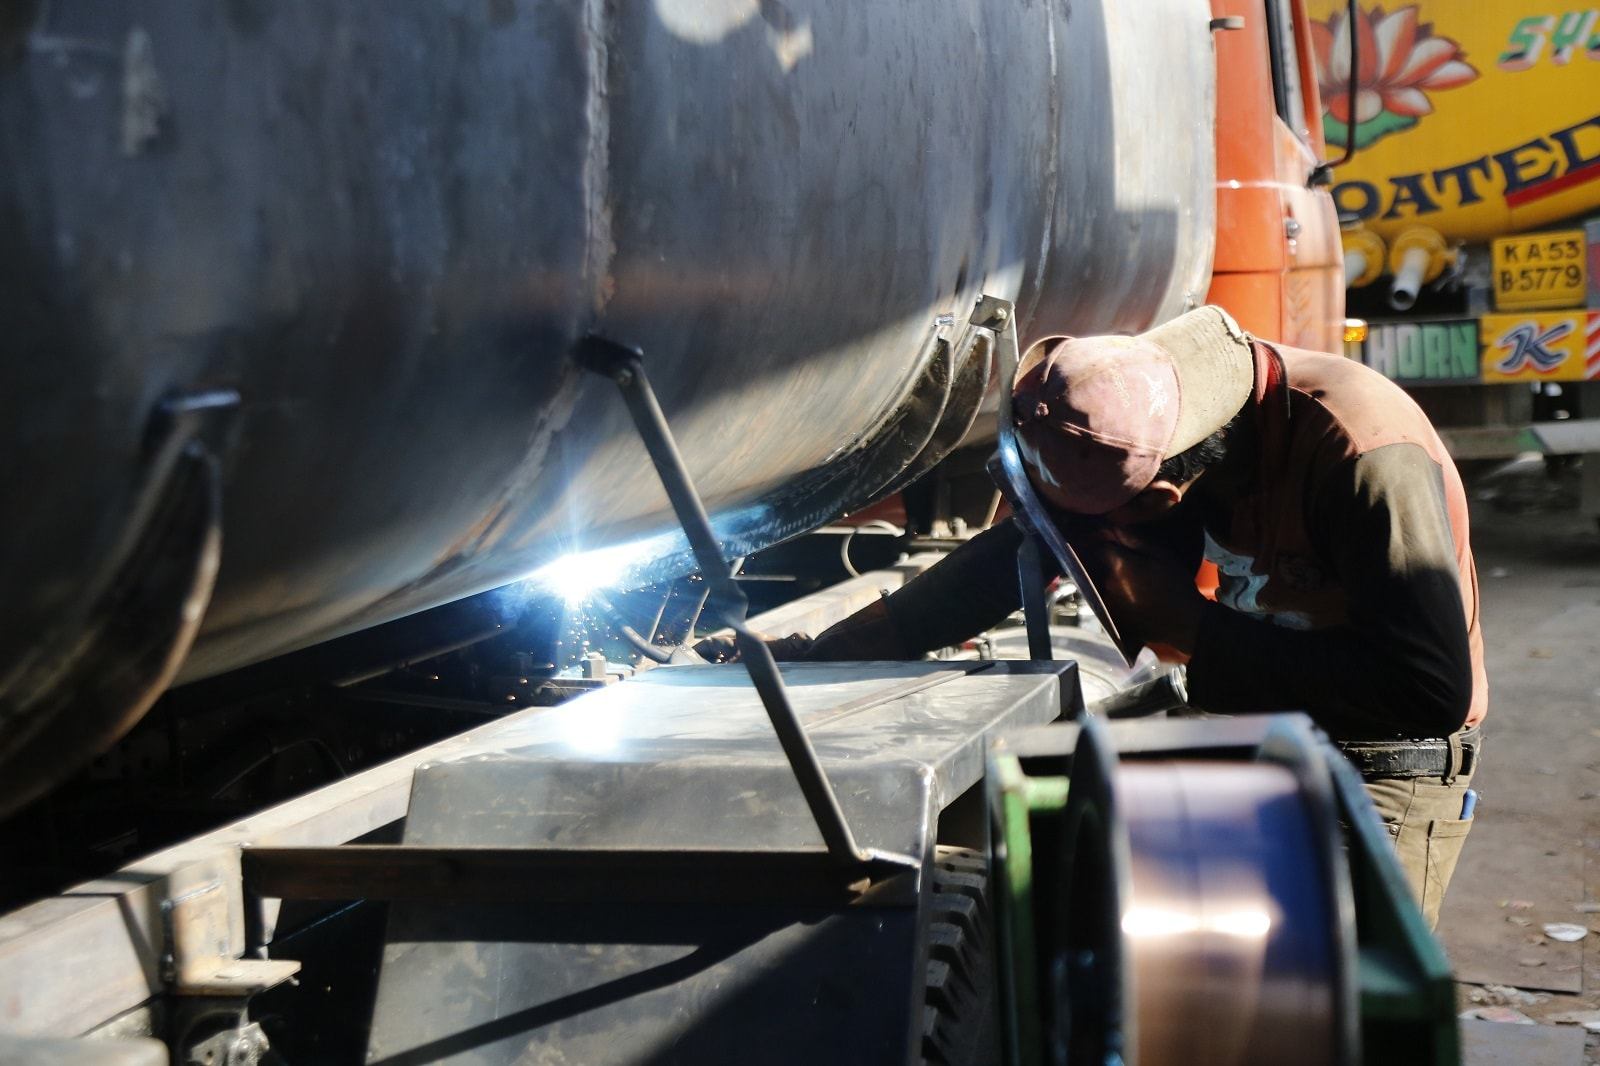 A worker welds together a water tanker at a local manufacturing workshop in Bangalore, on March 12, 2019. Thomson Reuters Foundation/Rajan Zaveri